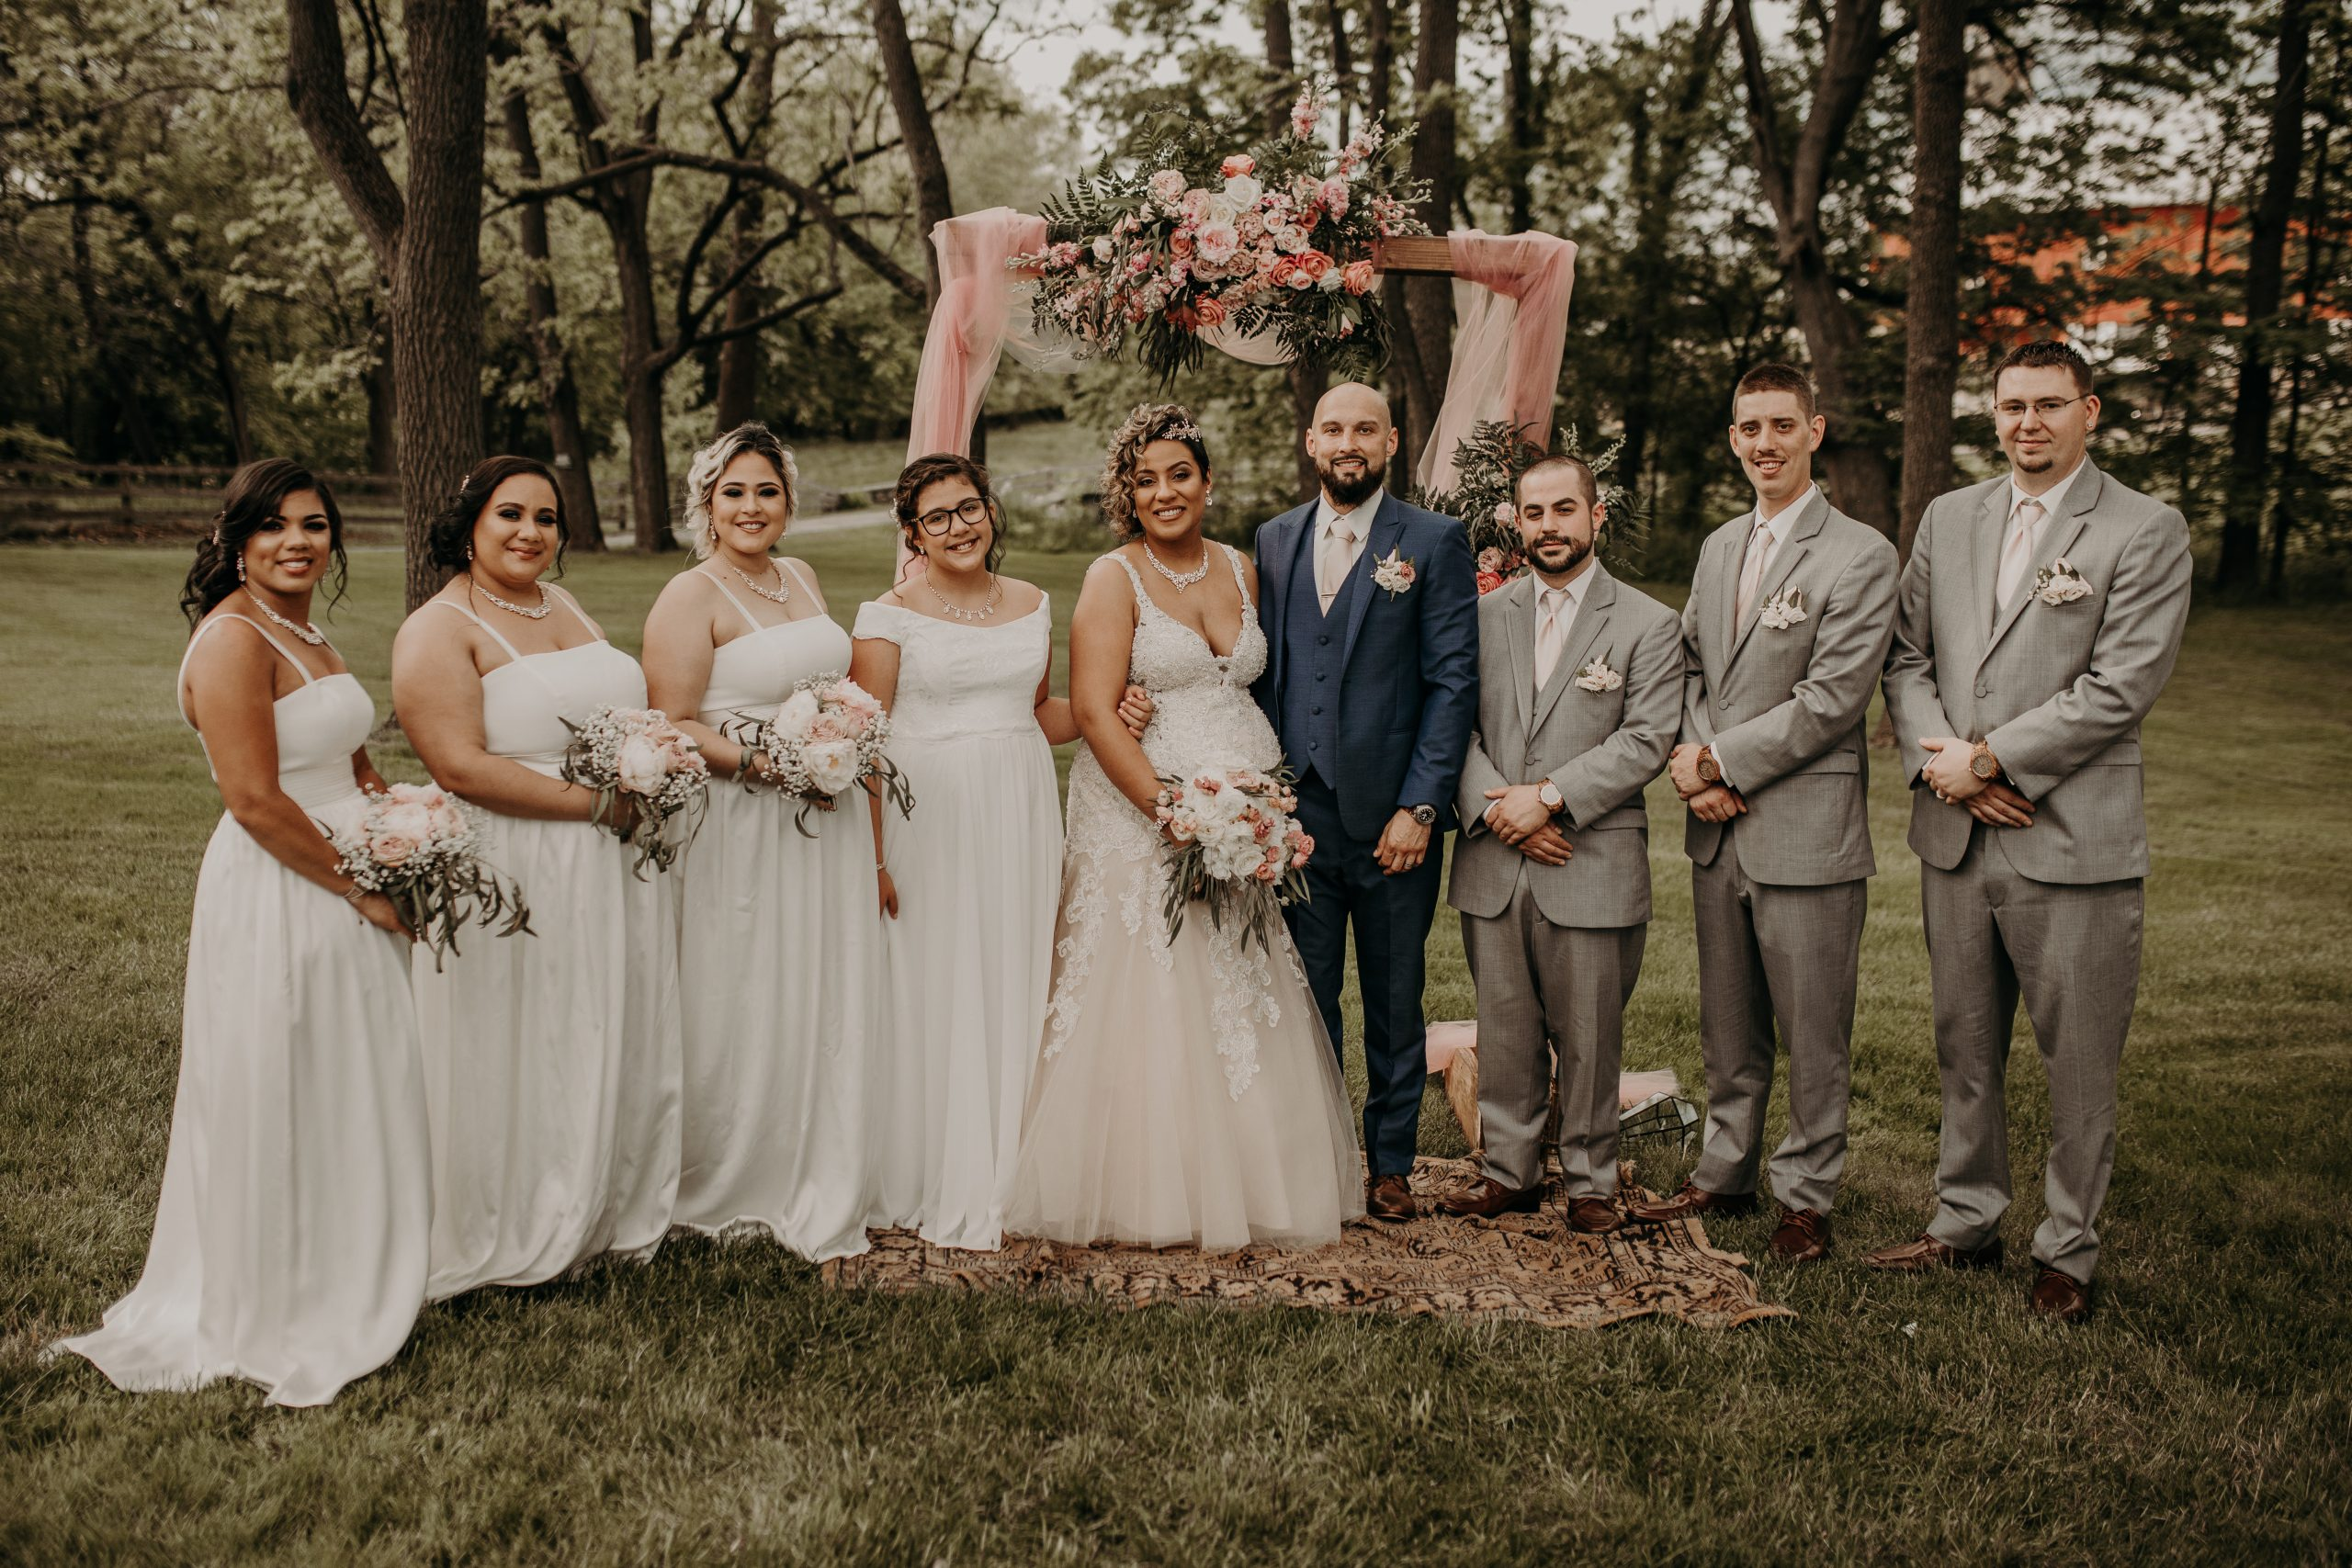 The whole wedding party is full of smiles knowing these two have finally wed. Christine and Richard wed on the Chestnut Hill Villa grounds on May of 2019. This organic ethereal styled wedding was captured by Garnet Dahlia Photography and featured on Dream Weddings.